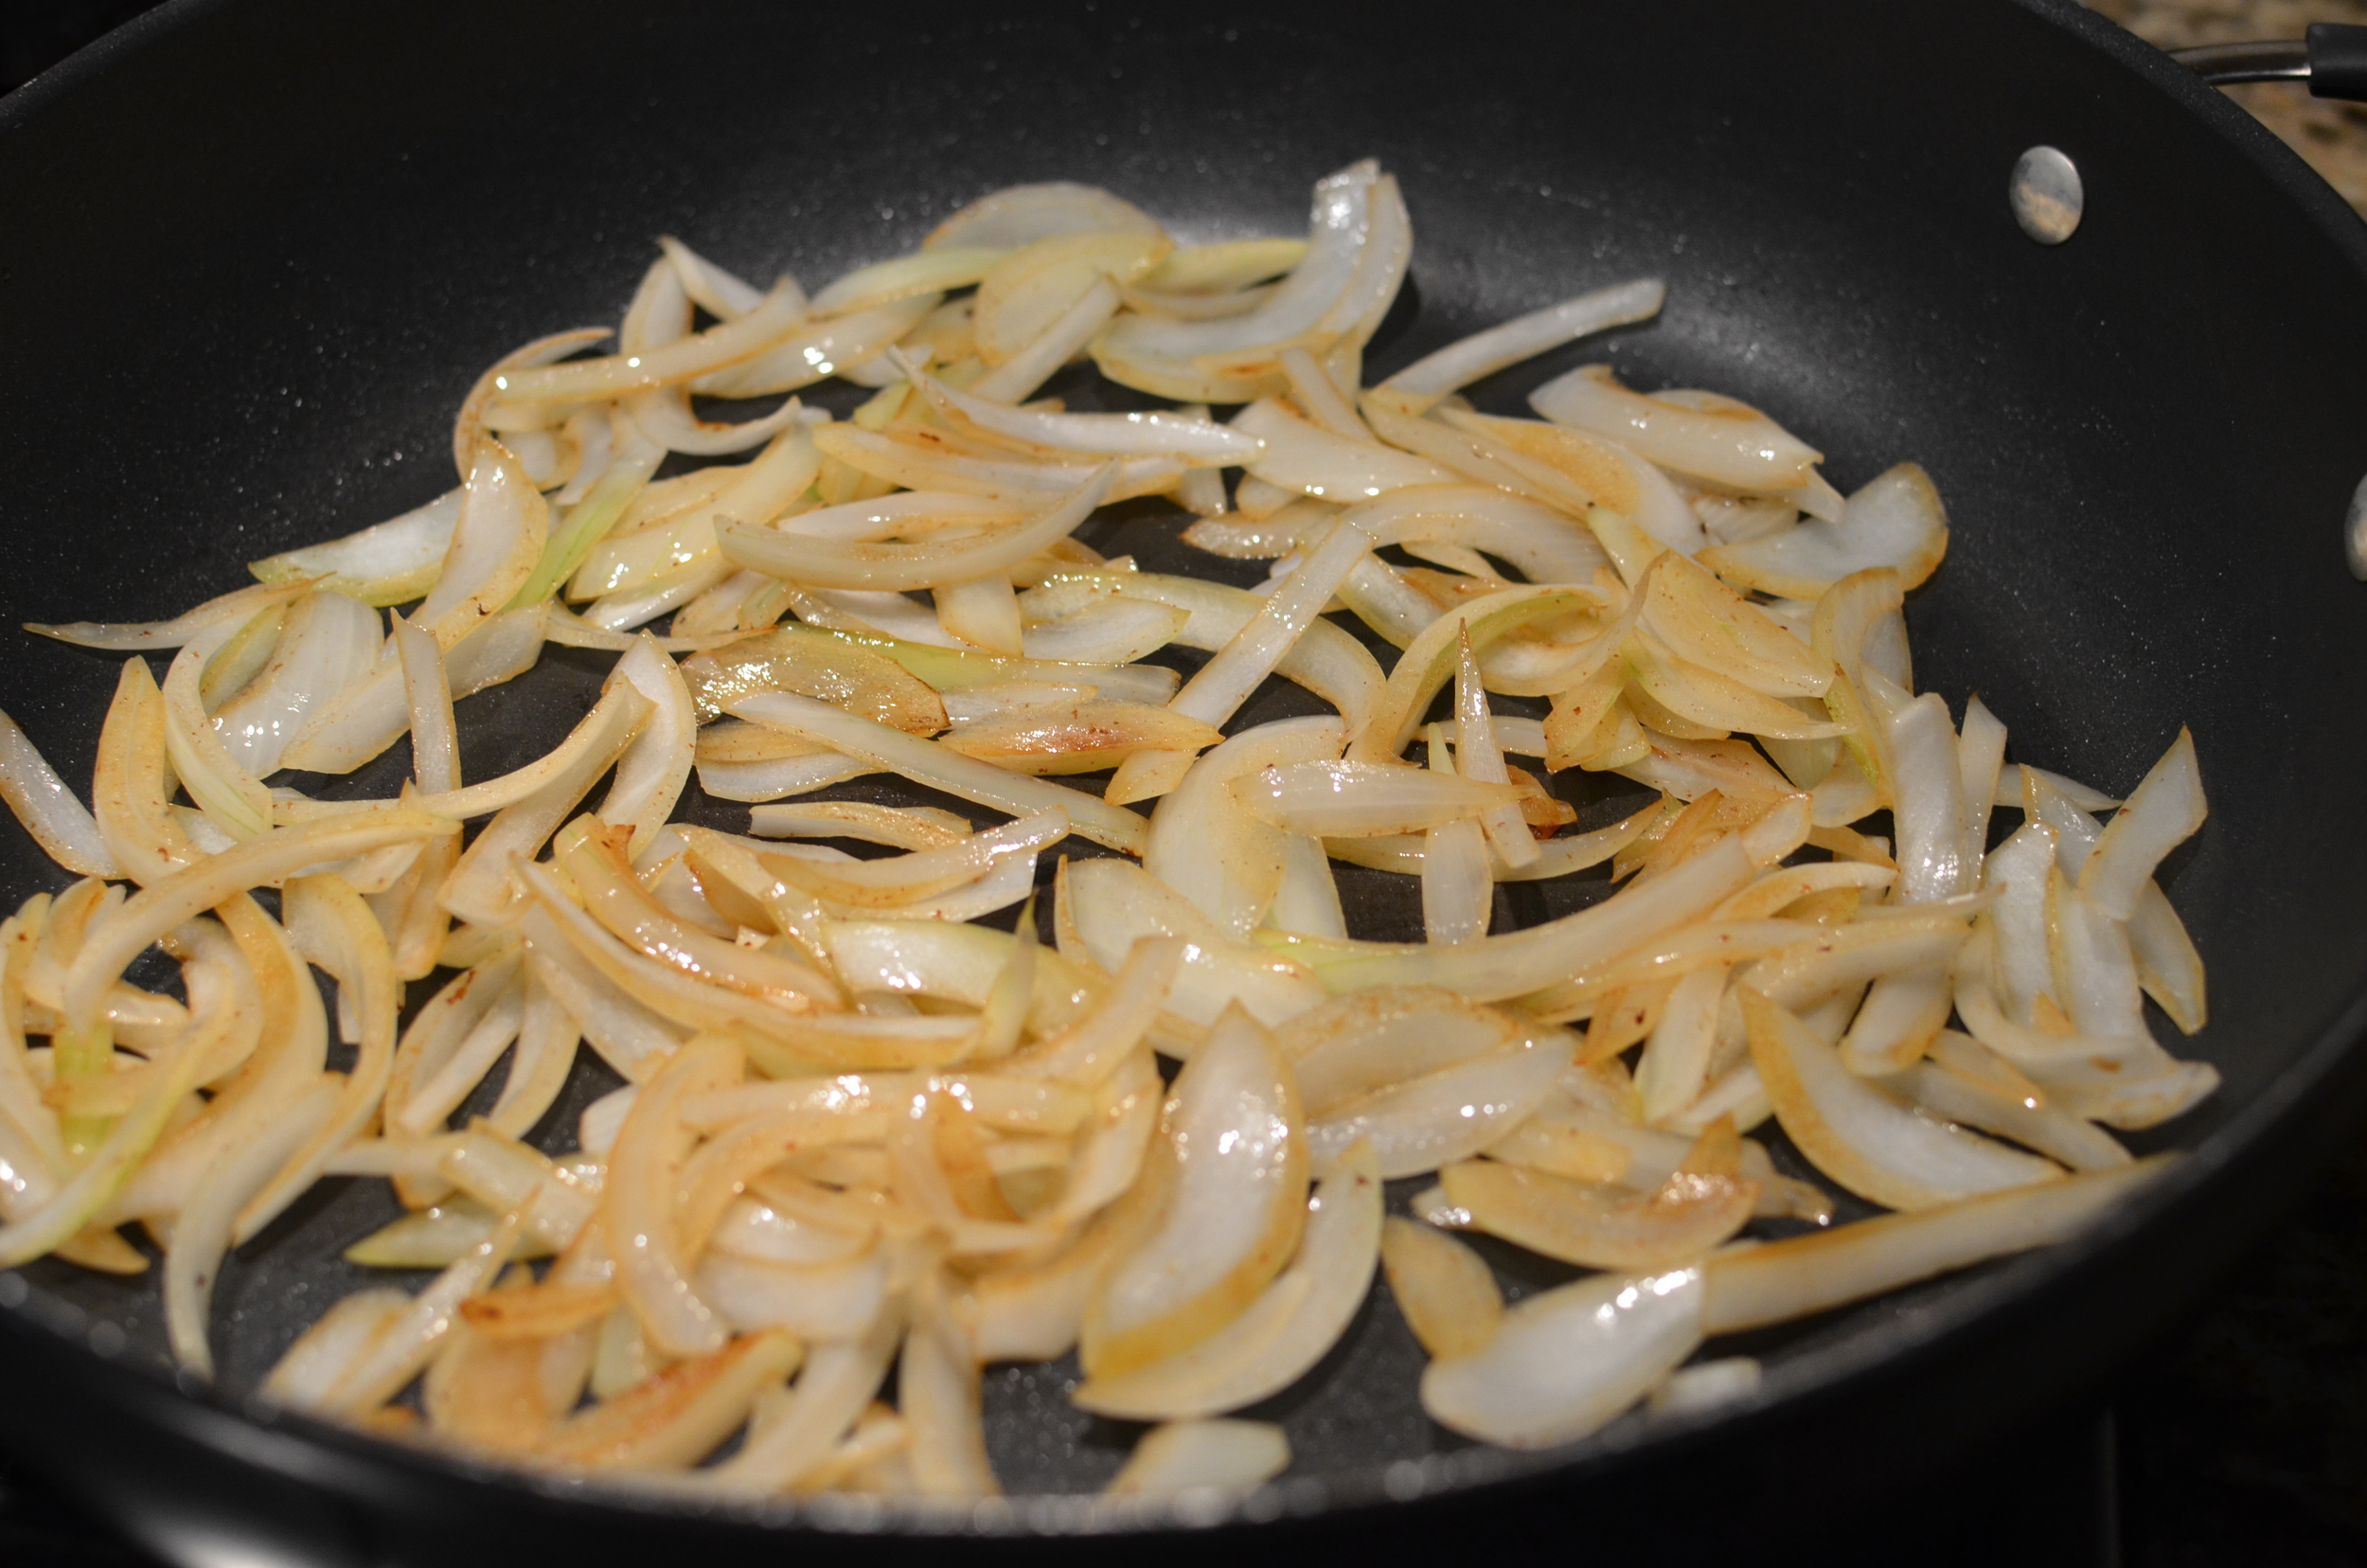 Stir the onions occasionally until they turn translucent and begin to caramelize.